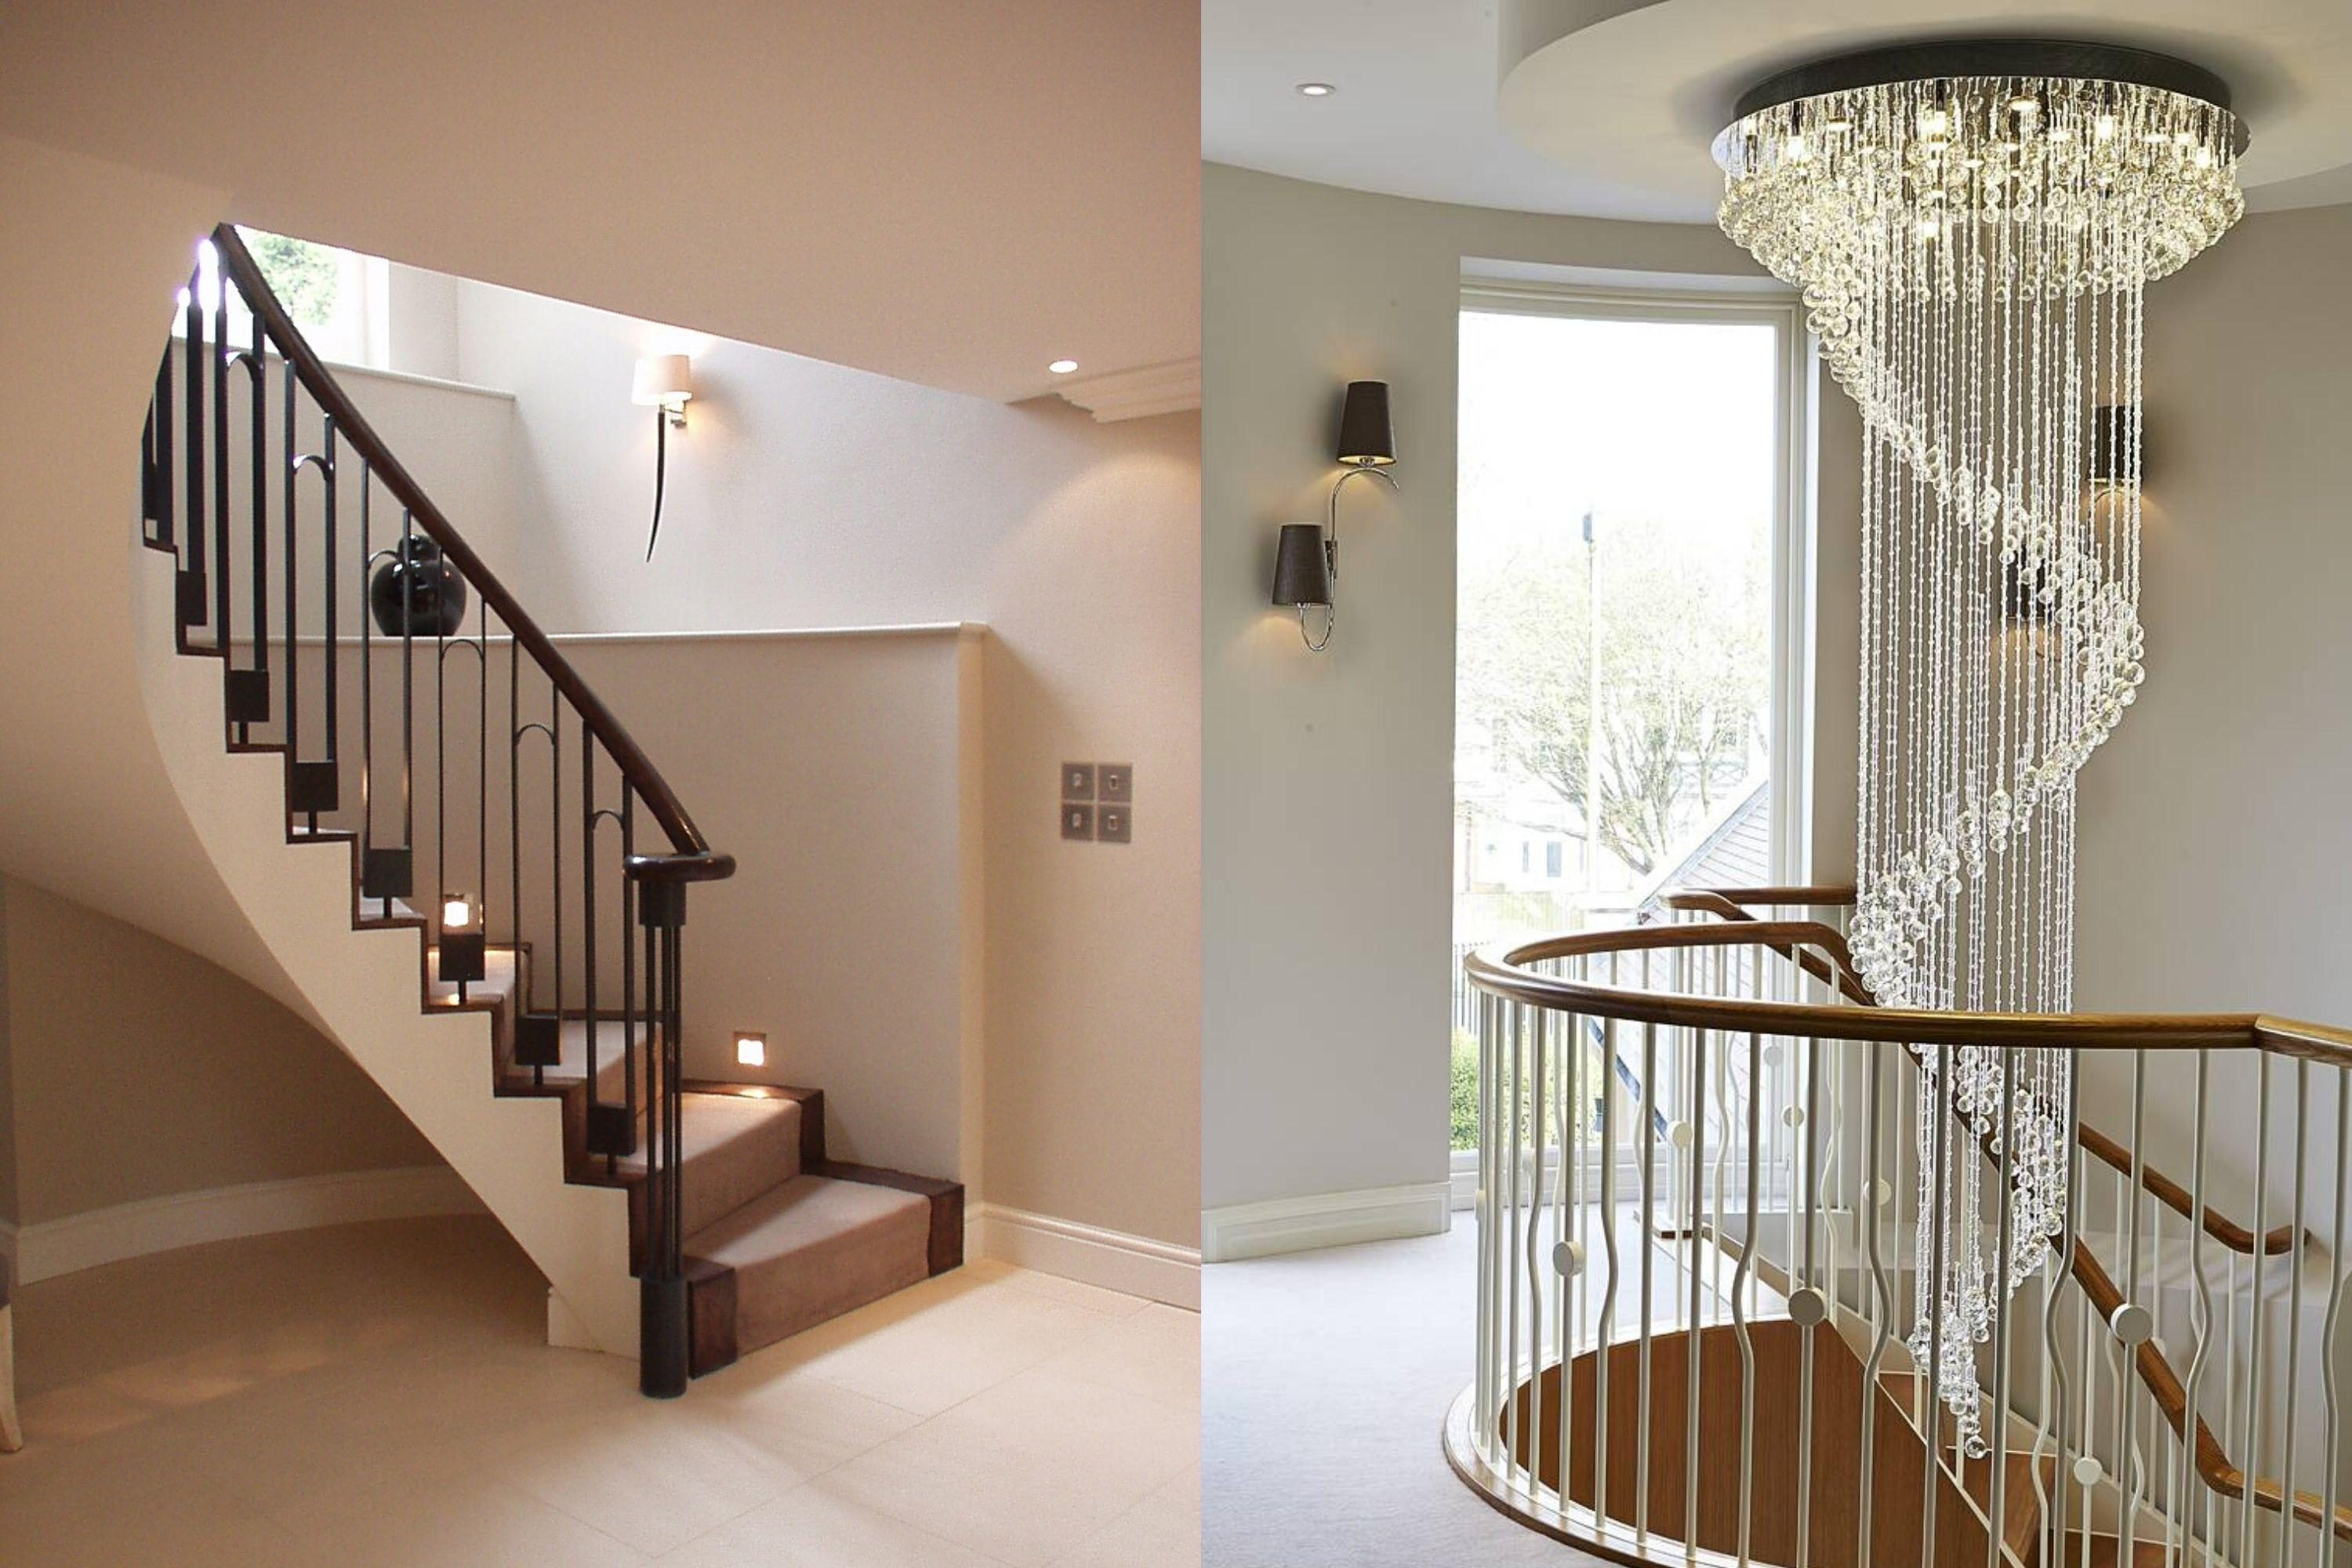 Spindle designs on stair balustrade